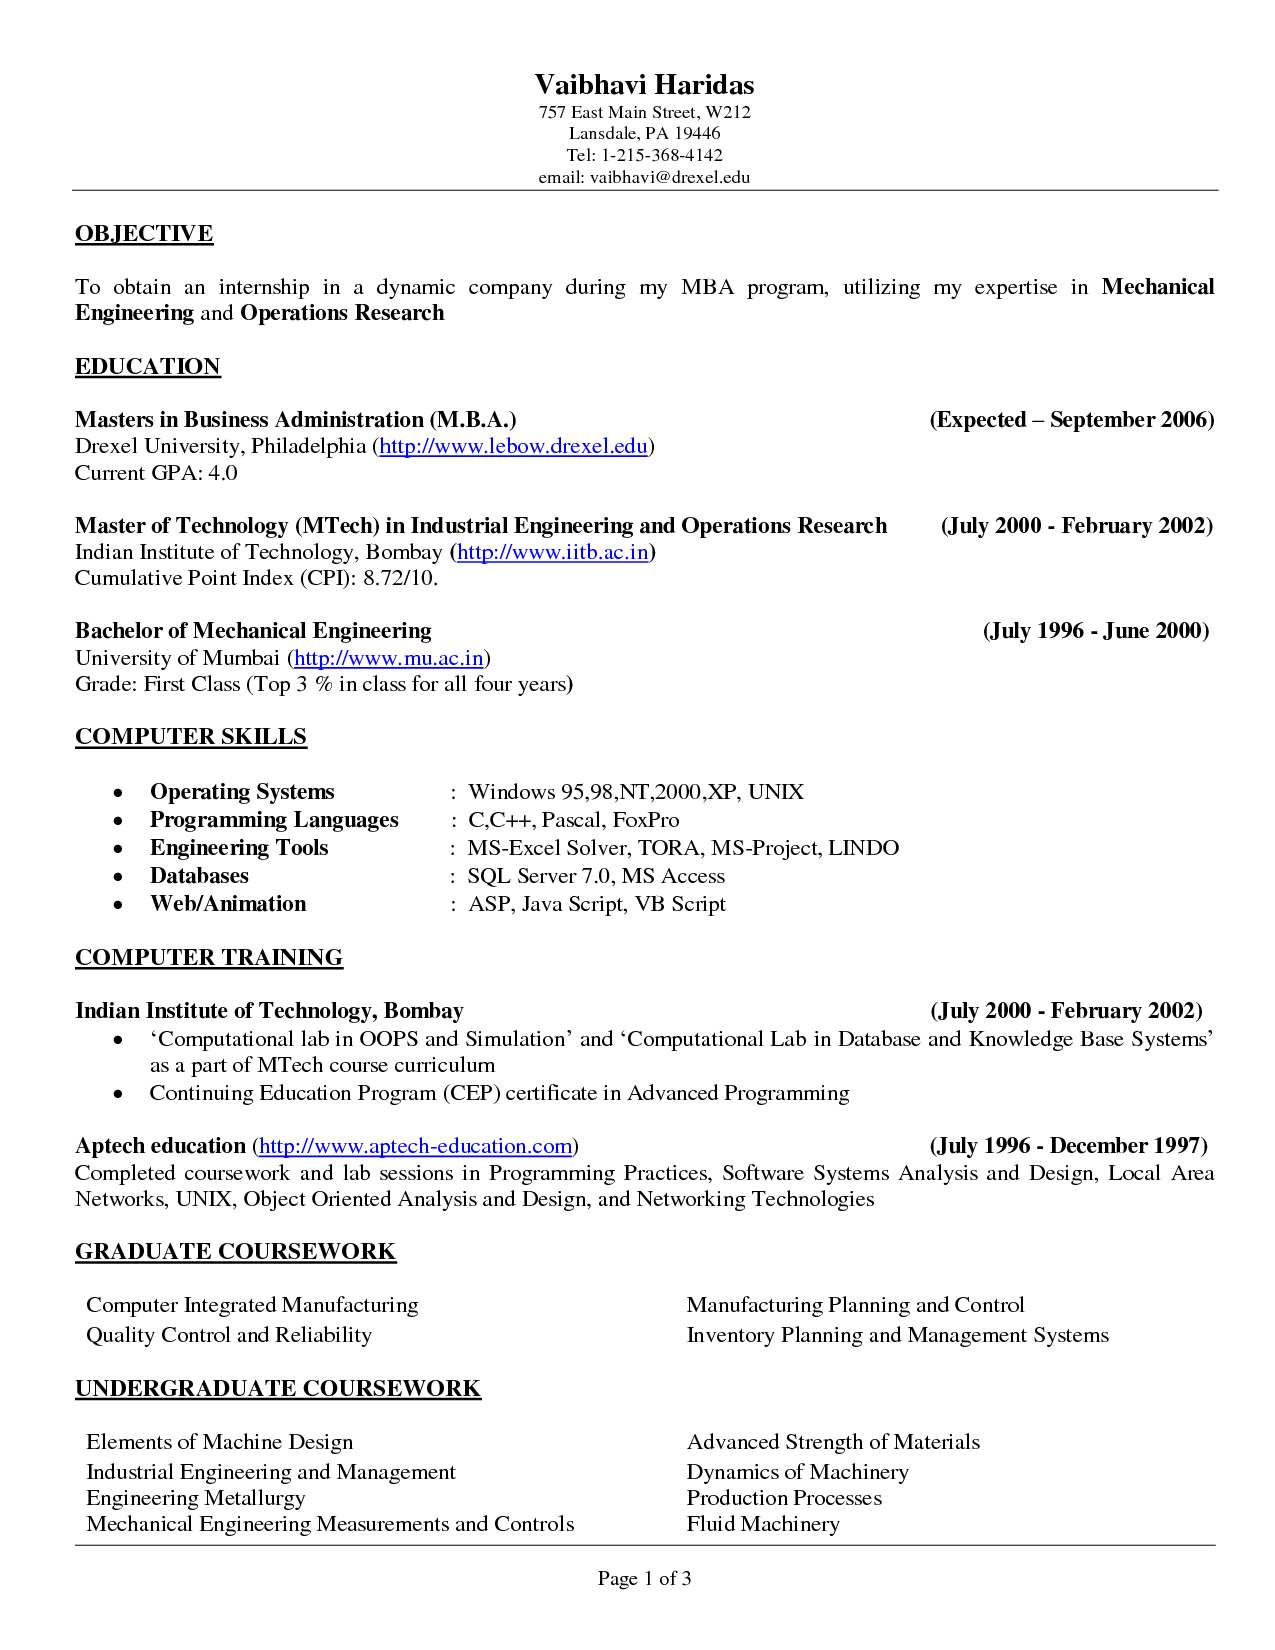 Resume Objective Example Best TemplateResume Objective Examples